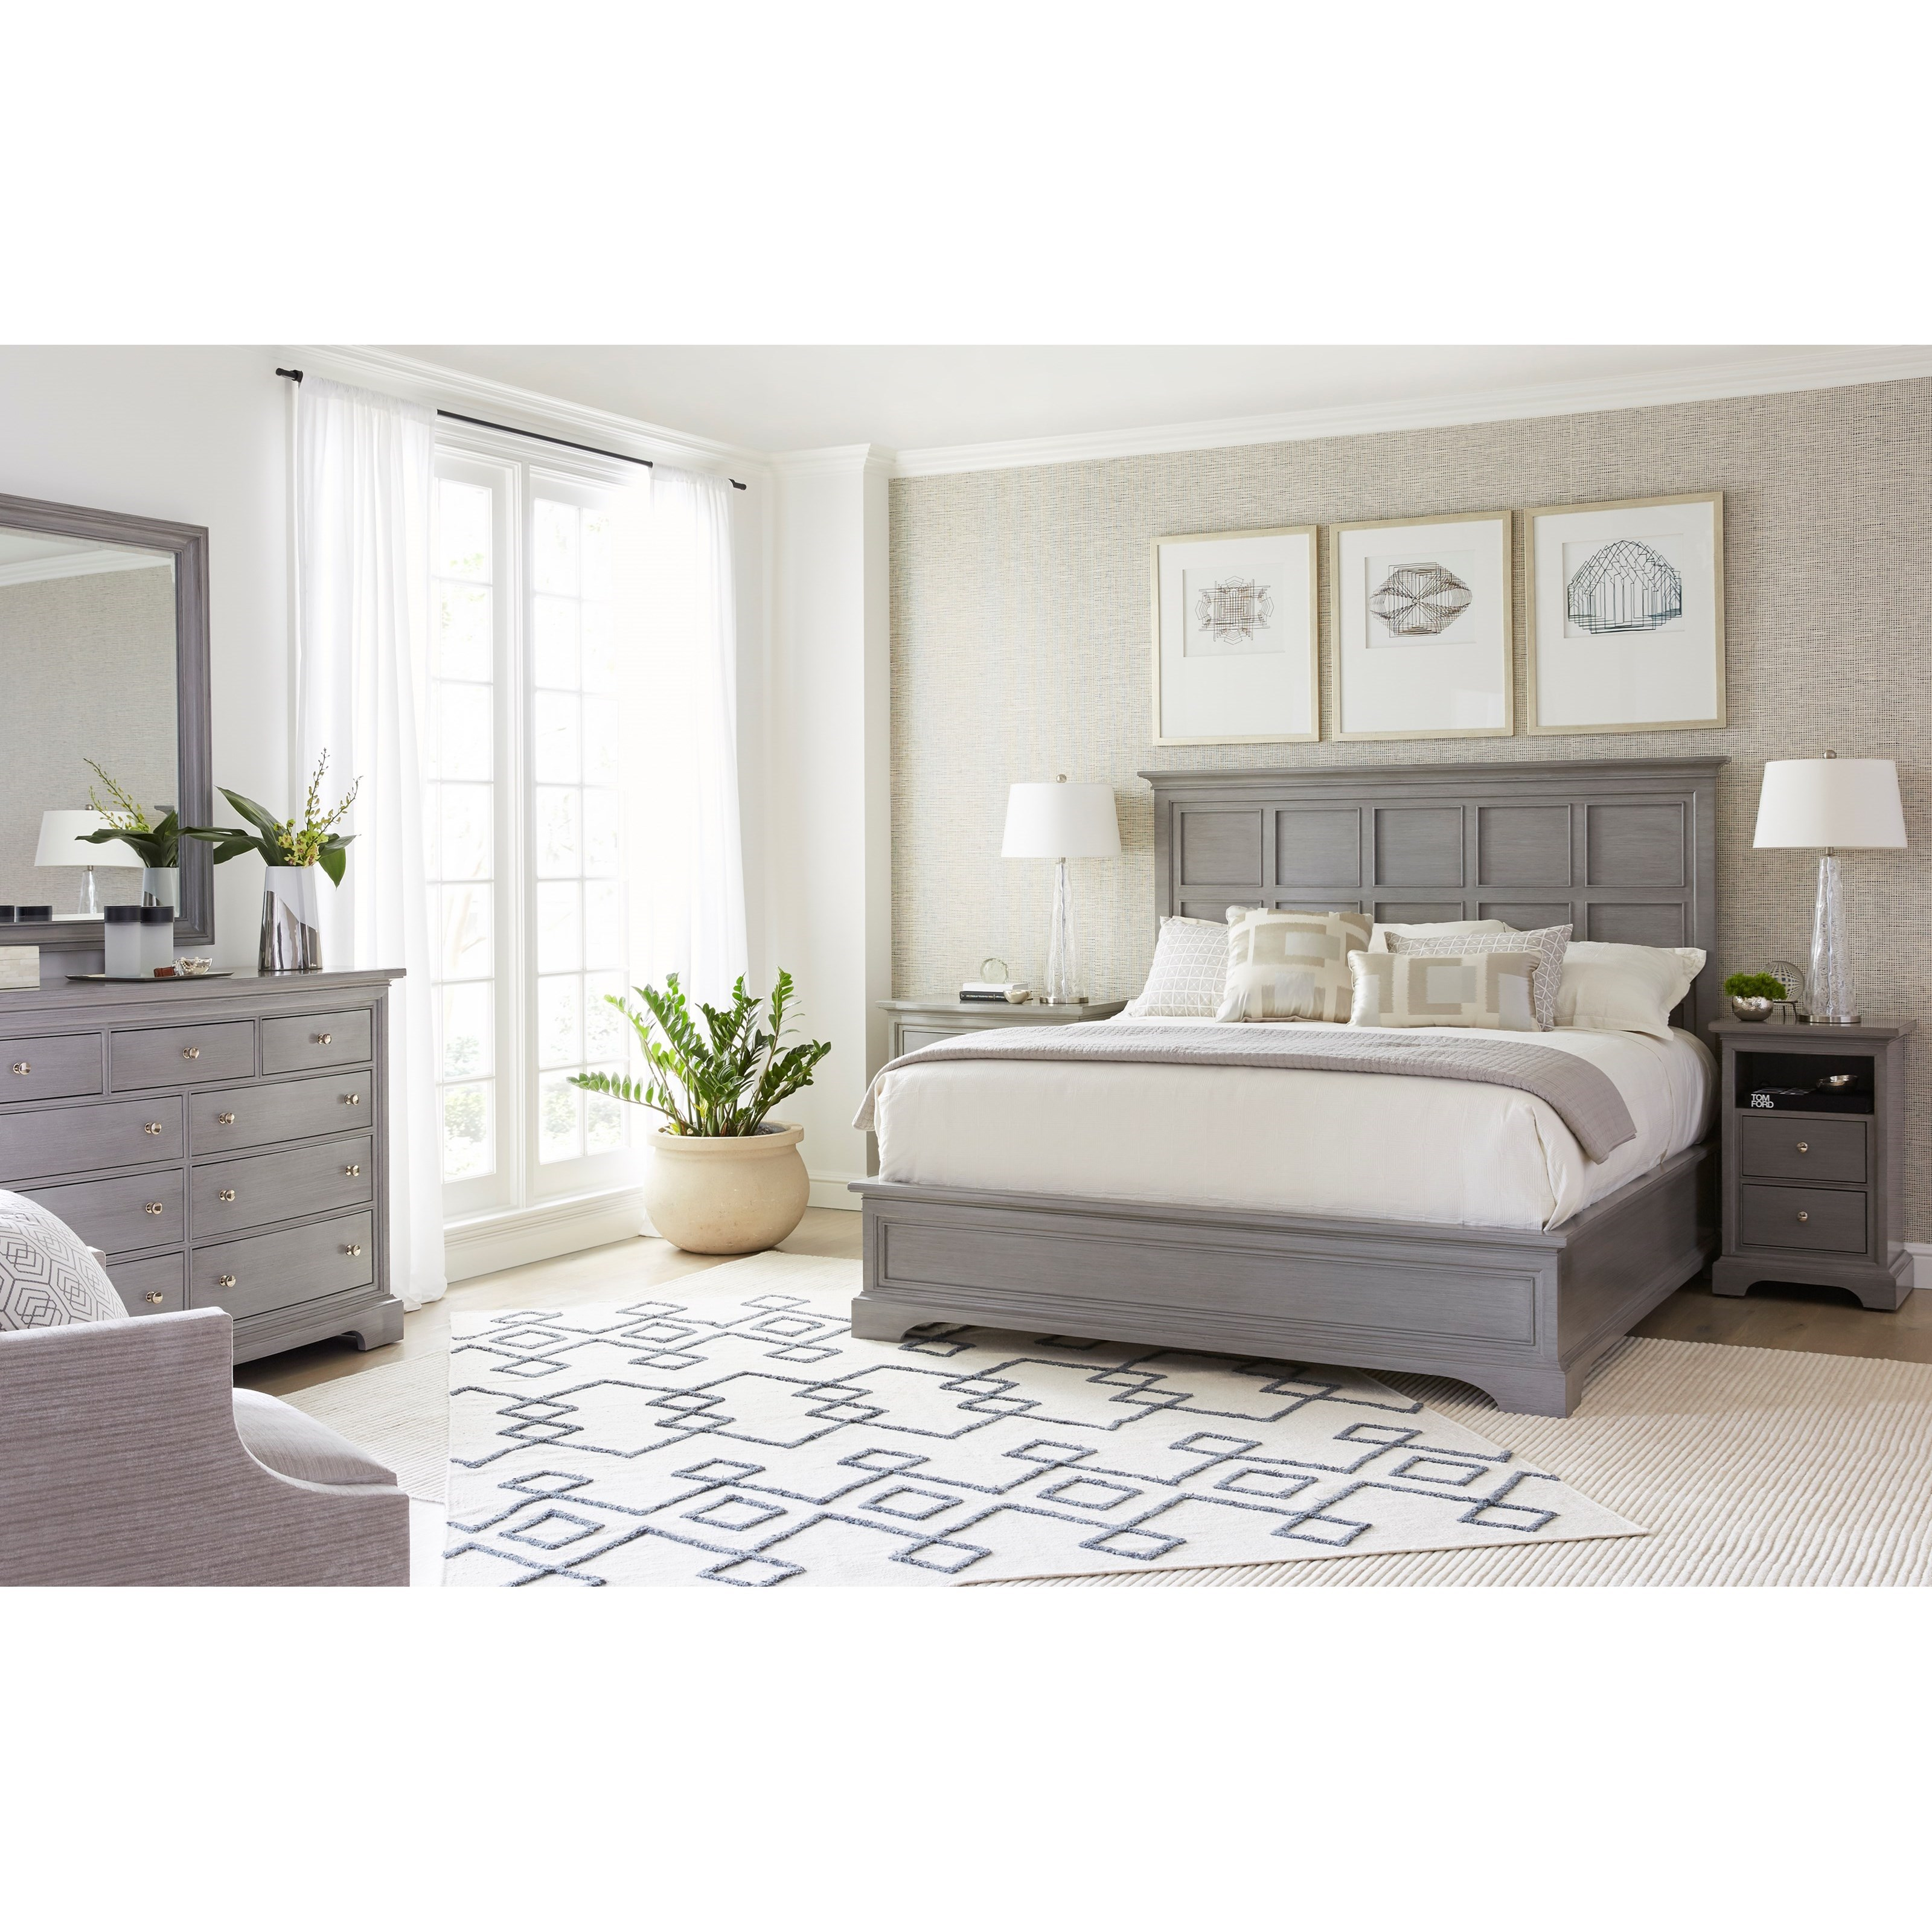 Stanley Furniture Transitional Queen Bedroom Group - Item Number: 042-33 Q Bedroom Group 1